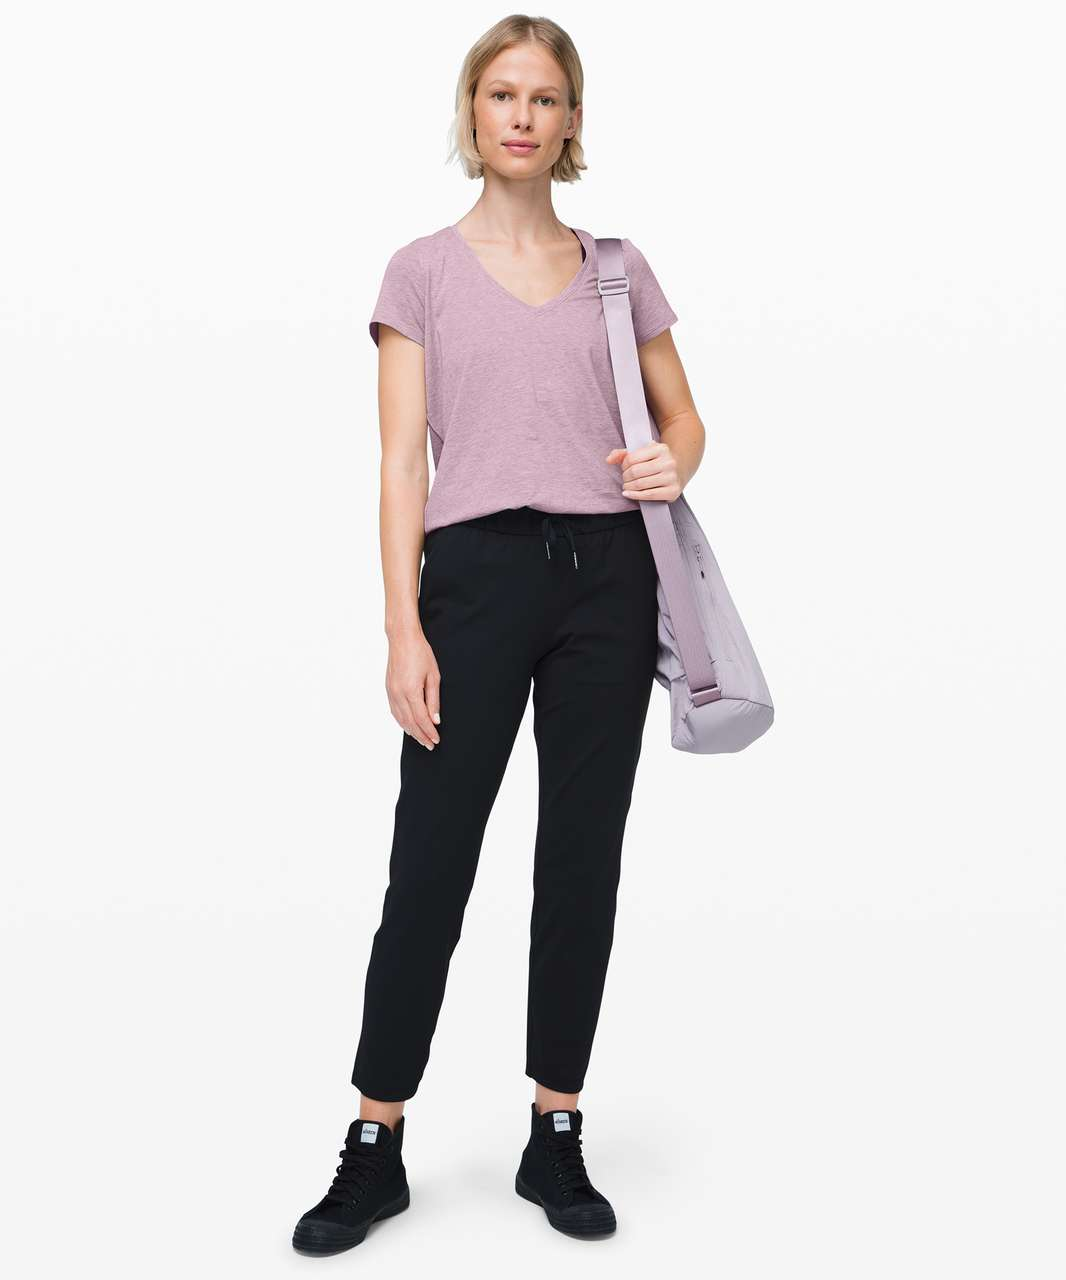 Lululemon Love Tee V - Heathered Frosted Mulberry